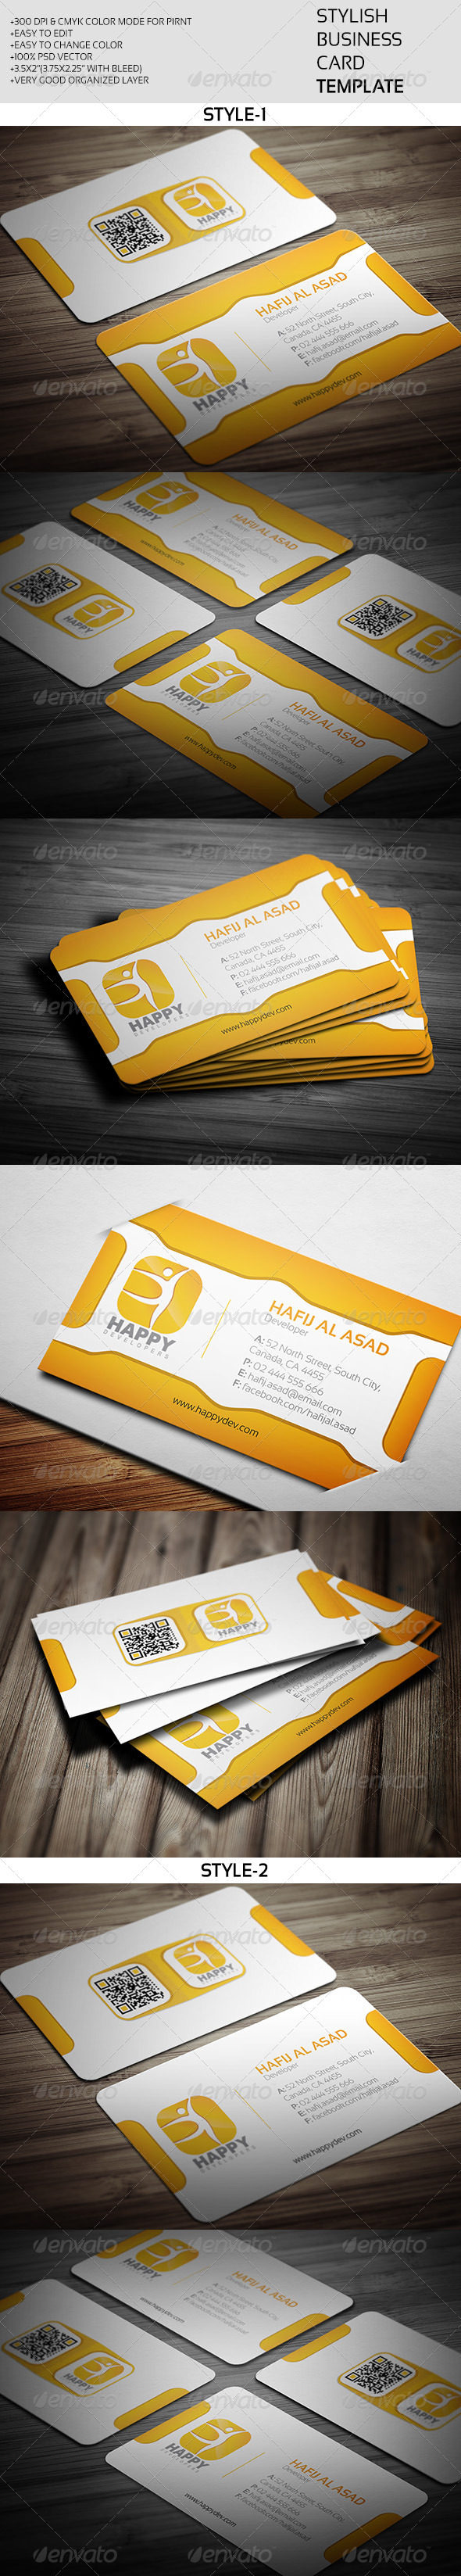 GraphicRiver Stylish Business Card Template 7974272